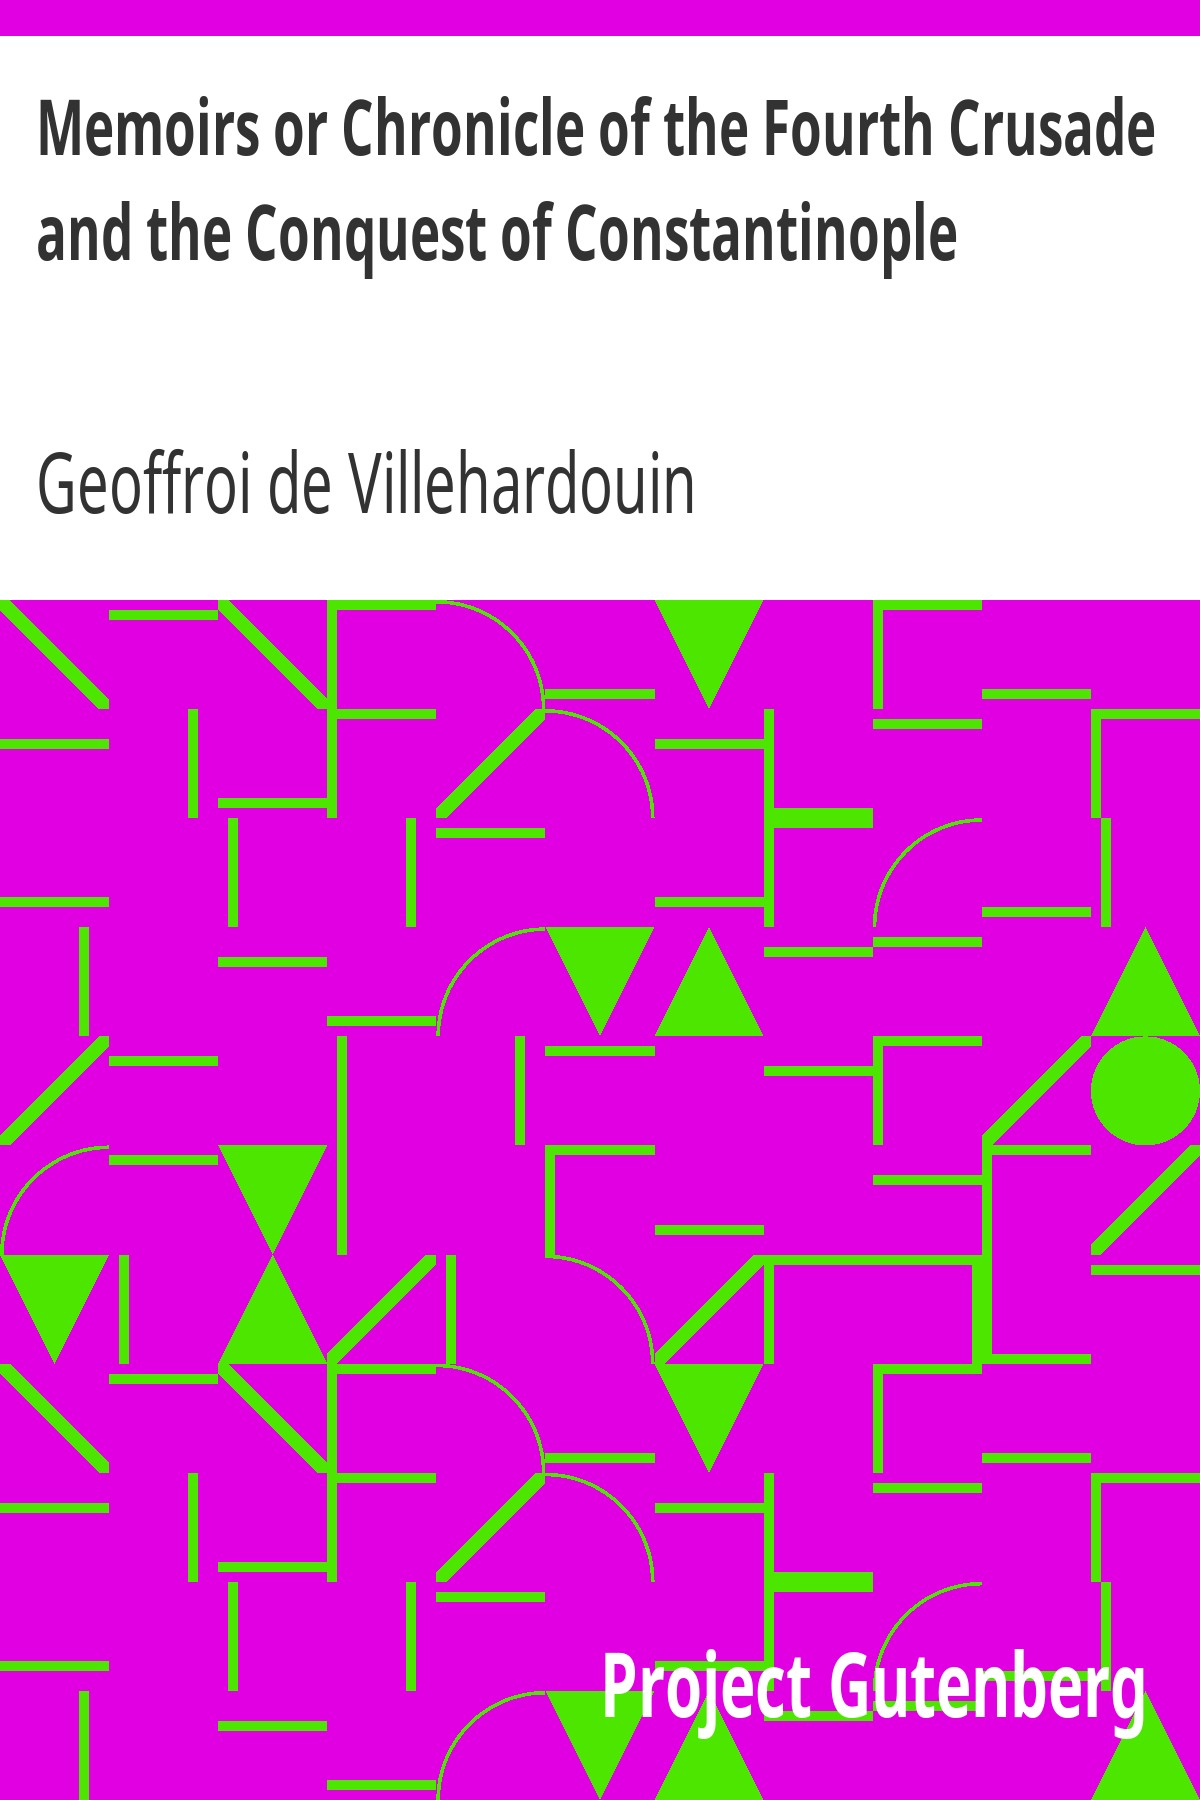 Geoffroi de Villehardouin Memoirs or Chronicle of the Fourth Crusade and the Conquest of Constantinople